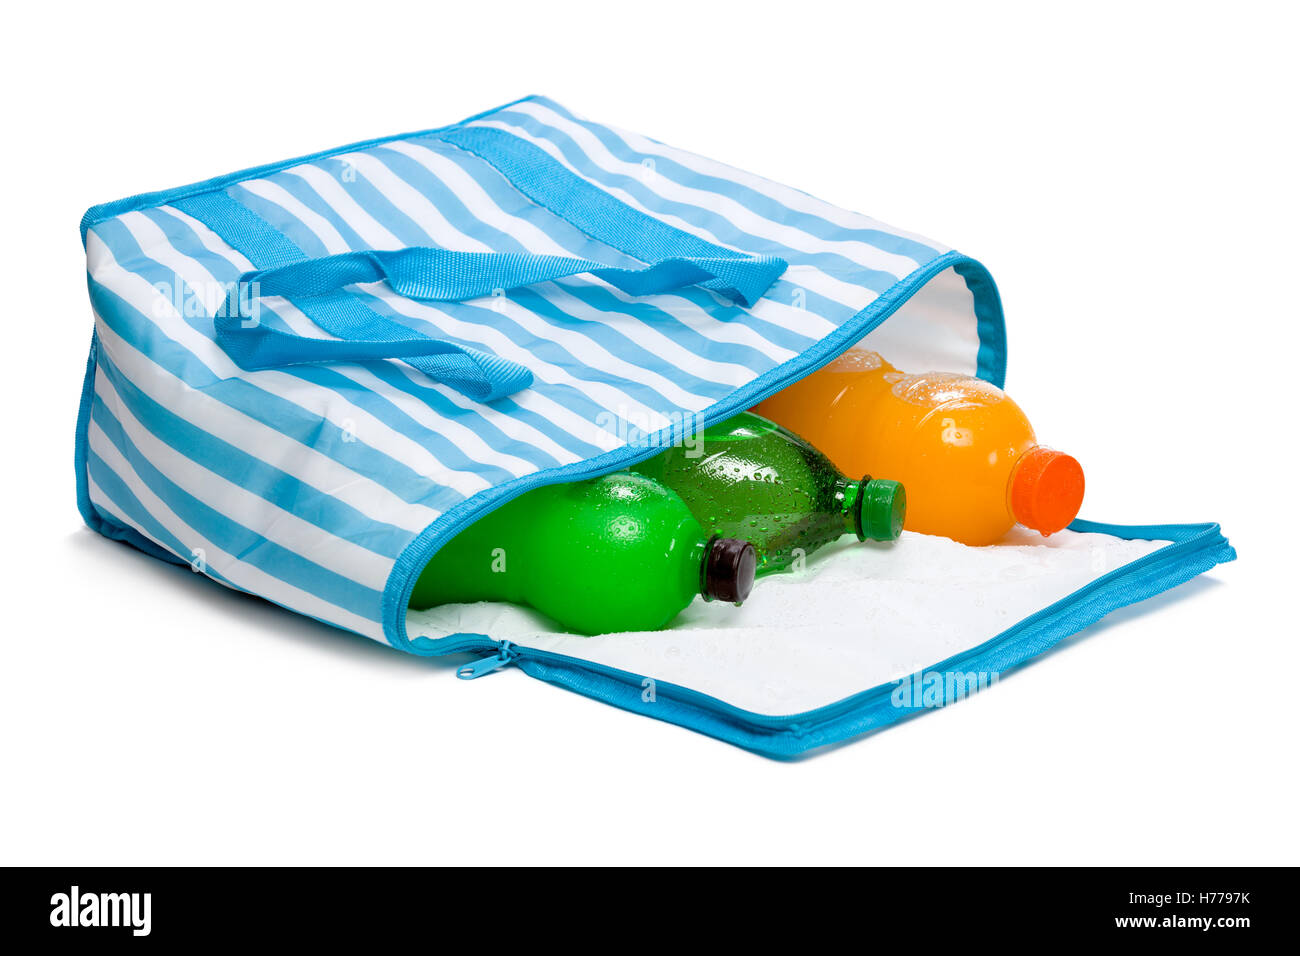 Open lying blue striped cooler bag with three bottle of cool refreshing drinks - Stock Image